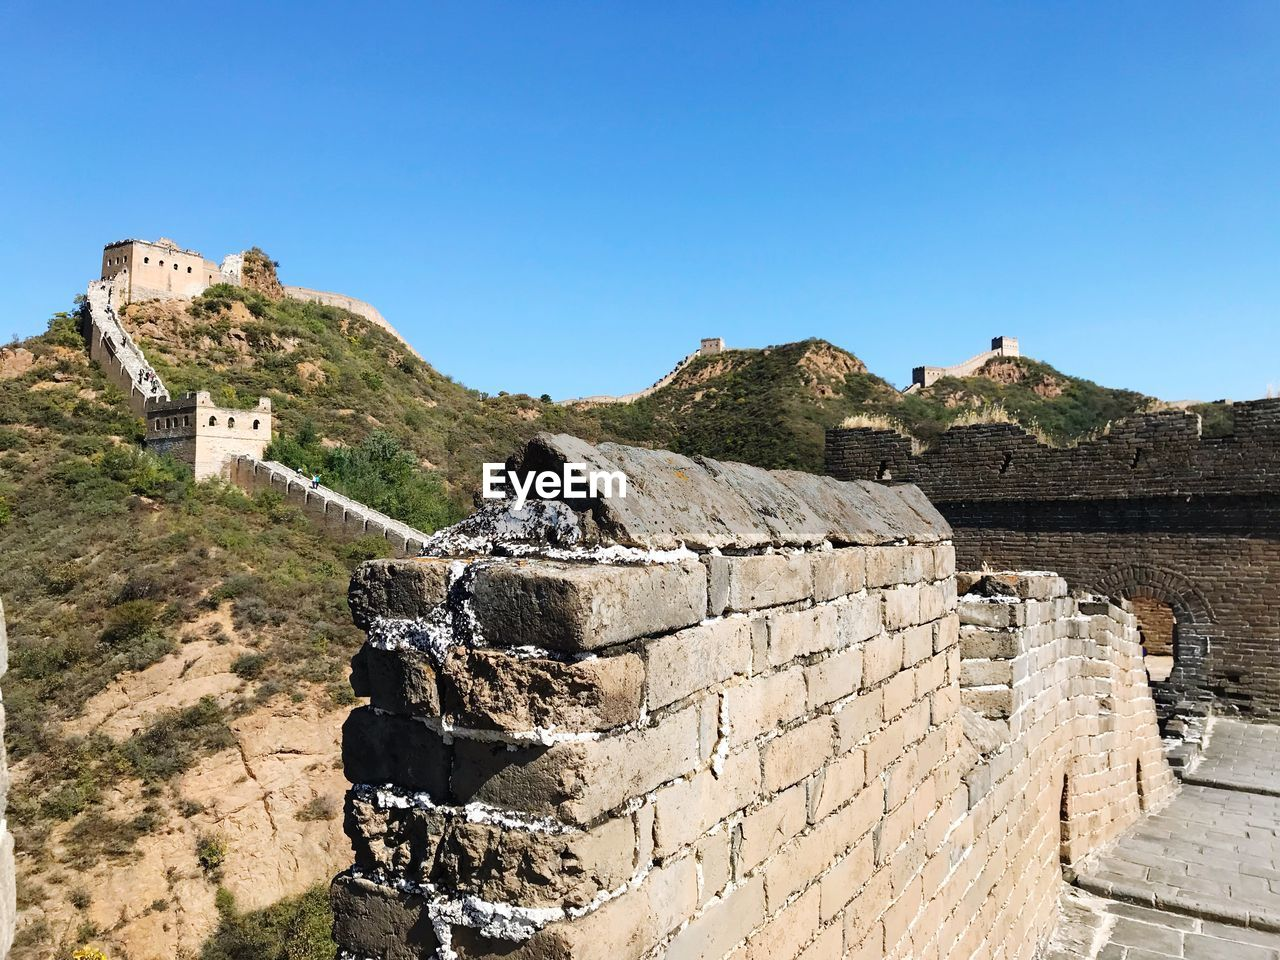 sky, architecture, history, the past, built structure, ancient, nature, clear sky, building exterior, day, travel destinations, wall, old ruin, tourism, blue, travel, mountain, sunlight, no people, copy space, fort, ancient civilization, outdoors, stone wall, ruined